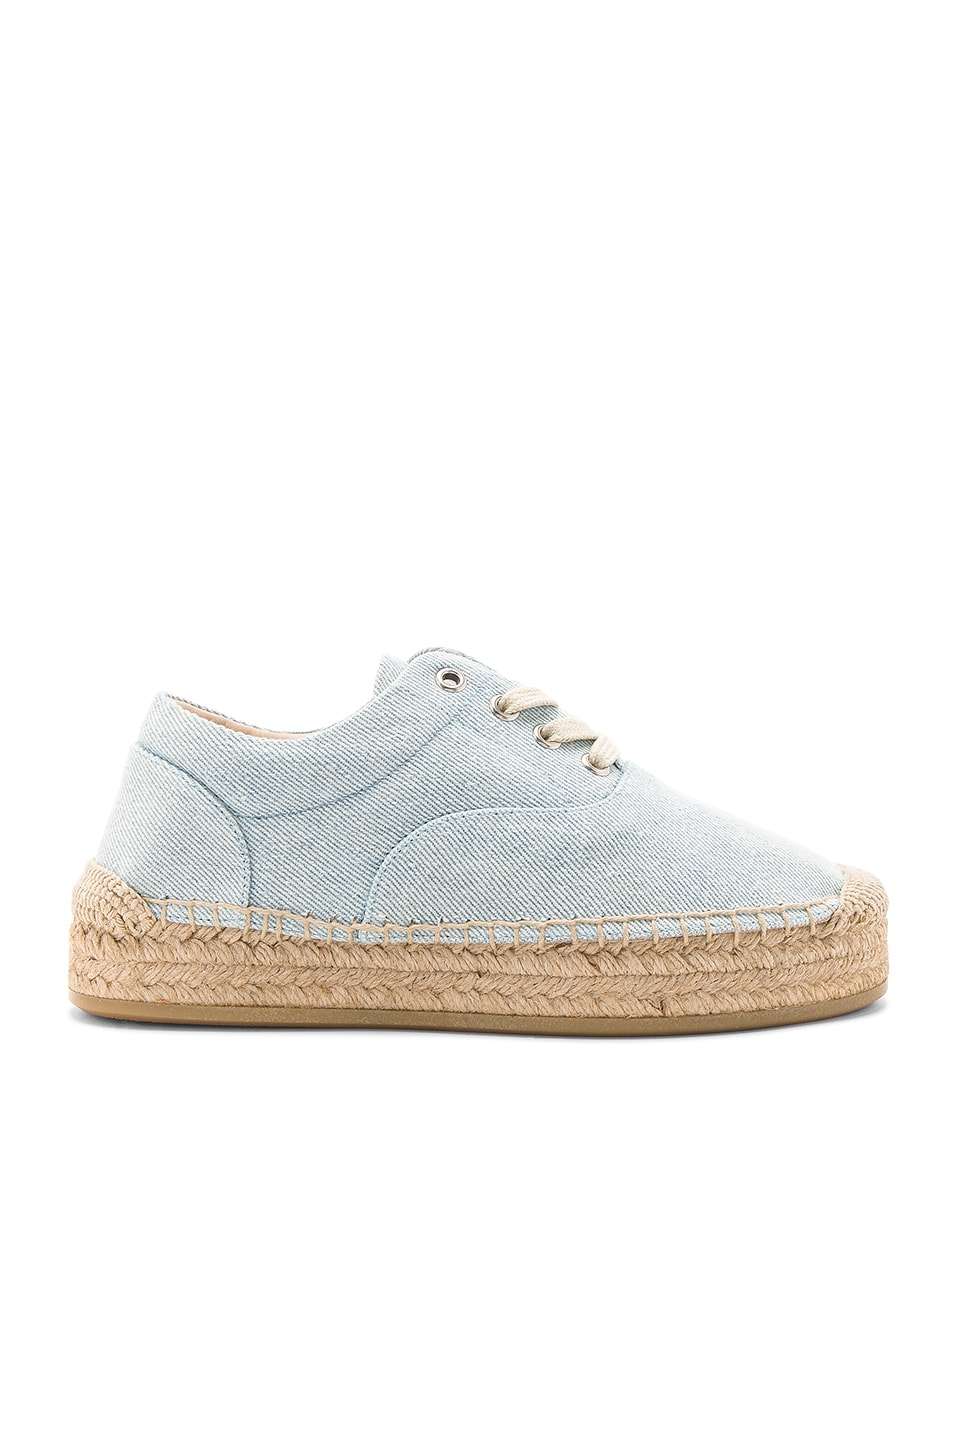 MM6 Maison Margiela Espadrille in Light Blue